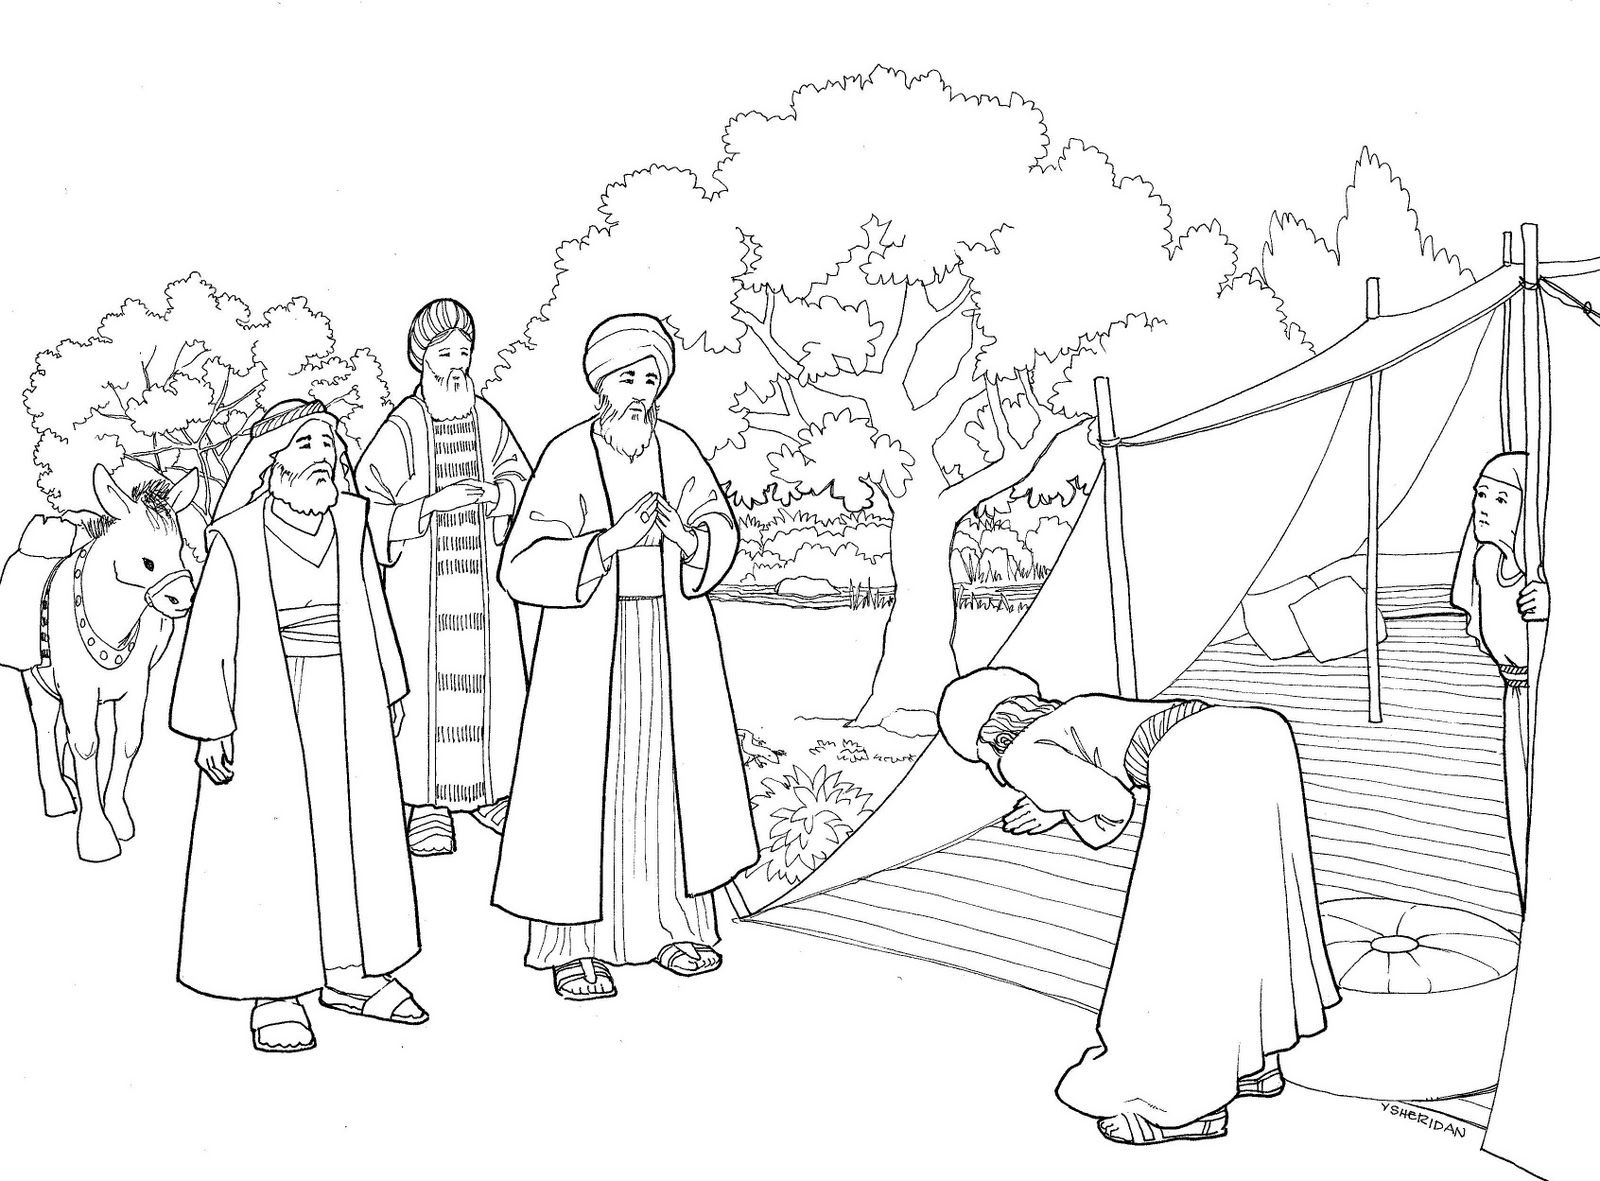 coloring picture of isaac and rebekah isaac and rebekah coloring page at getdrawings free download rebekah isaac and coloring of picture